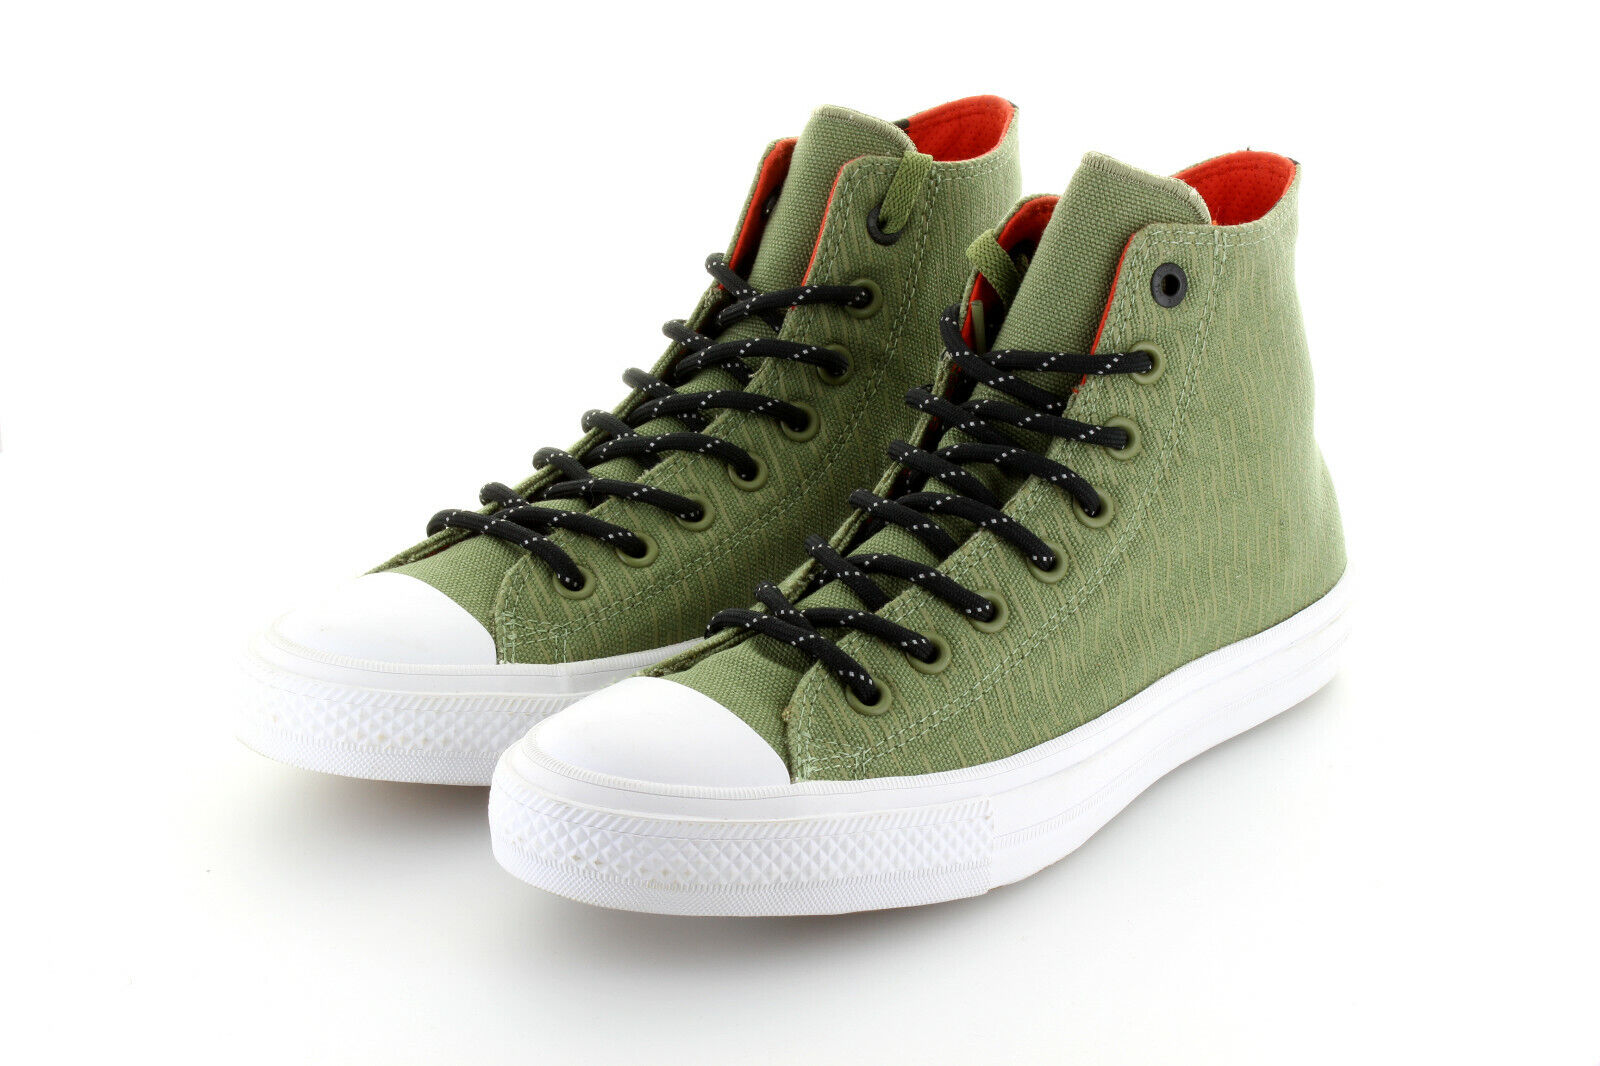 Converse Chuck Taylor As II Hi Olive vert Counter Climate Lunarlon 42,5 43 us9